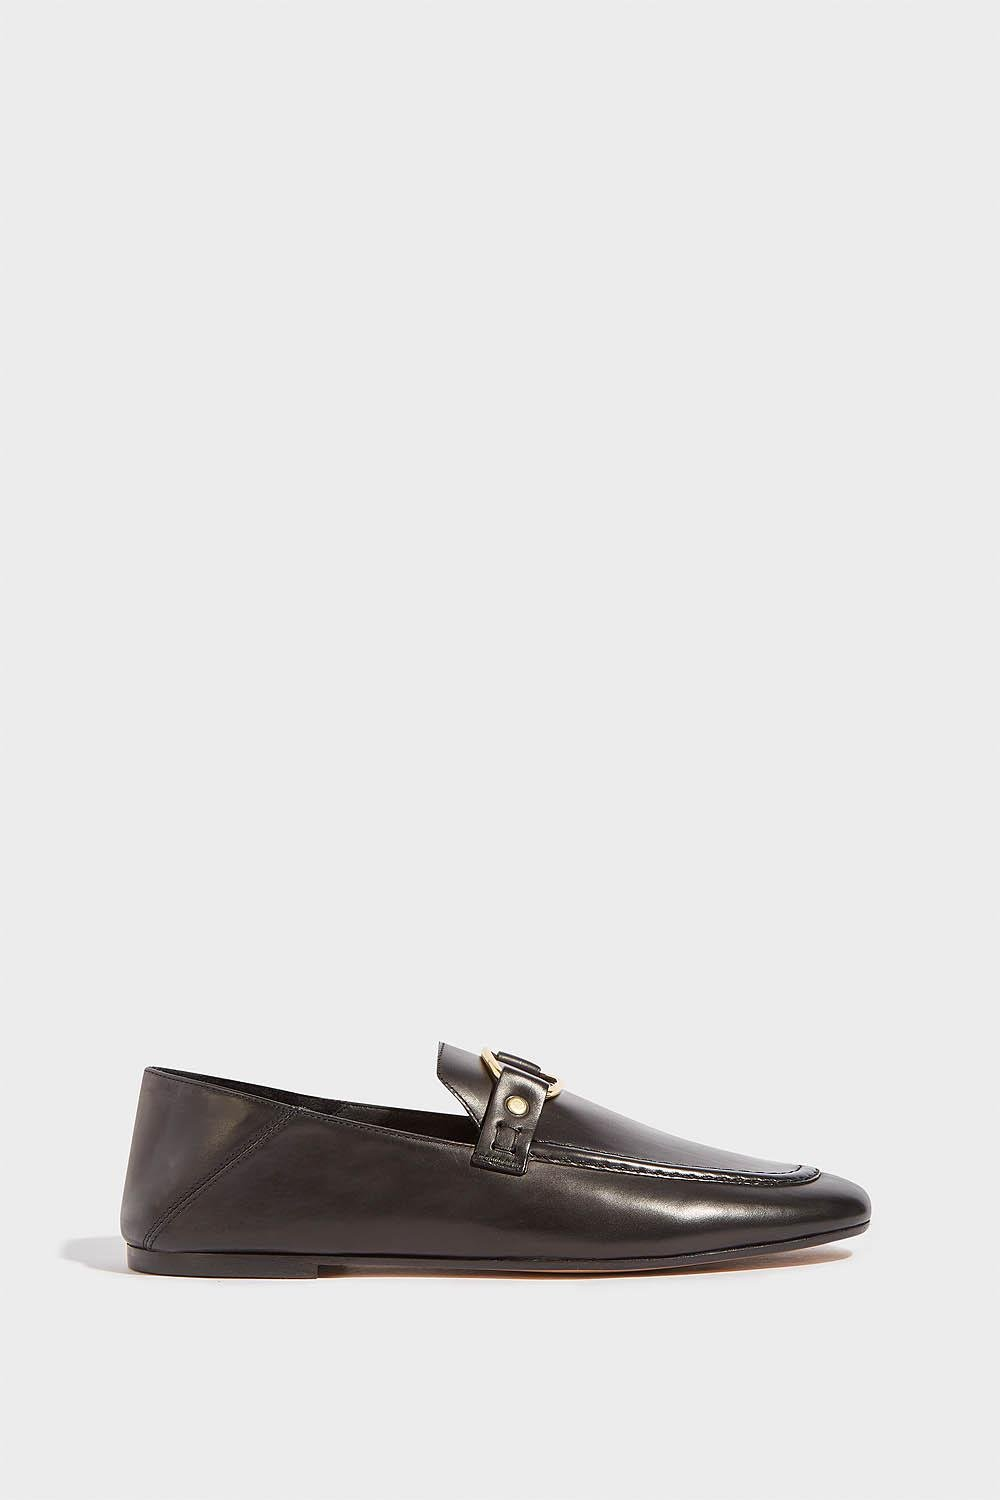 d55b5f92ae1 Lyst - Isabel Marant Ferlyn Leather Loafers in Black